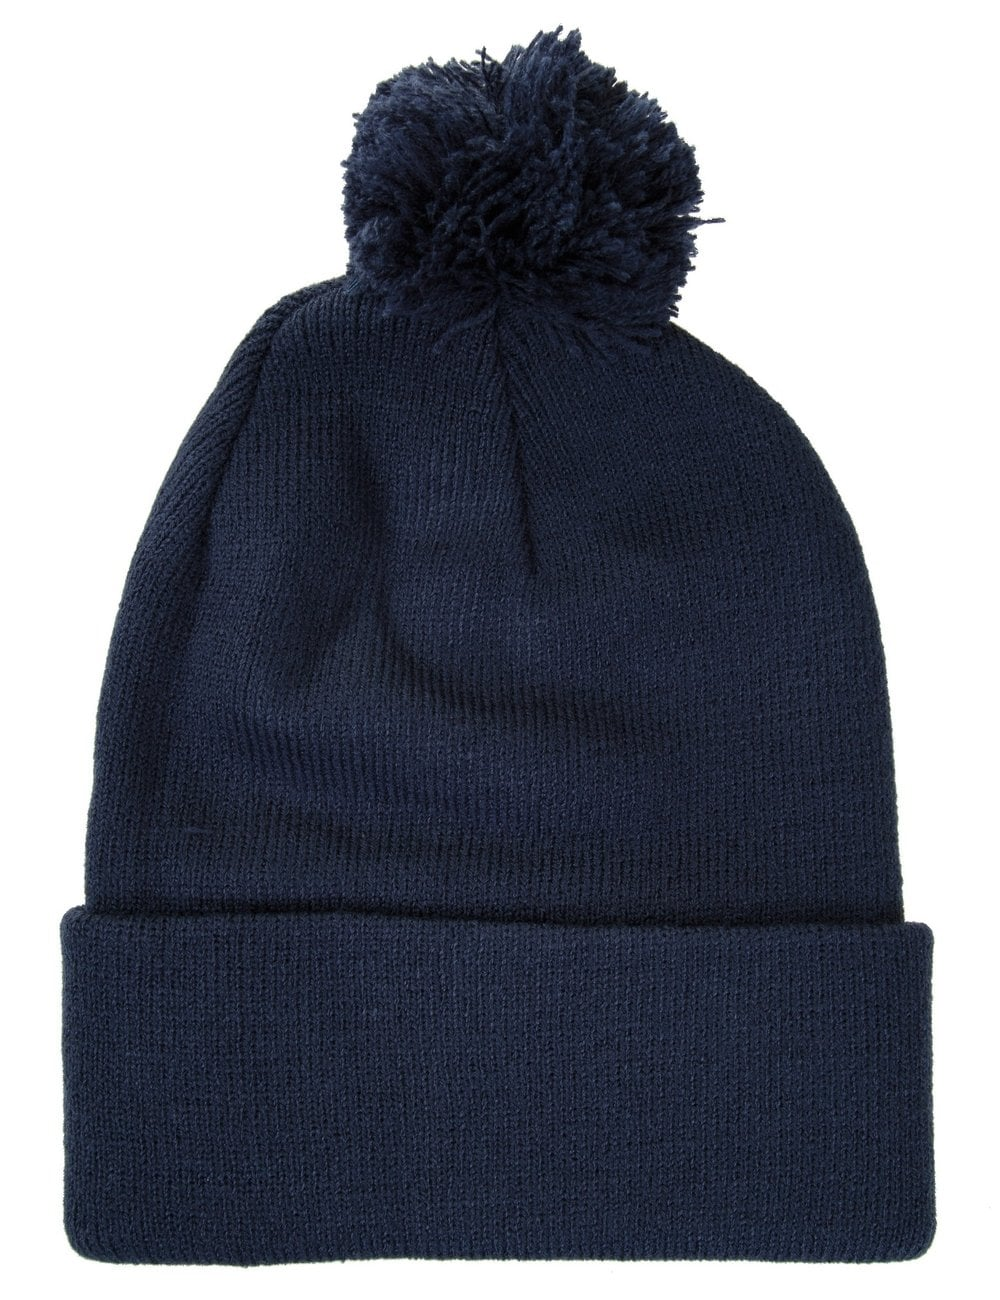 1add5b8d5a8 Carhartt WIP Bobble Watch Hat - Jupiter - Accessories from Fat ...